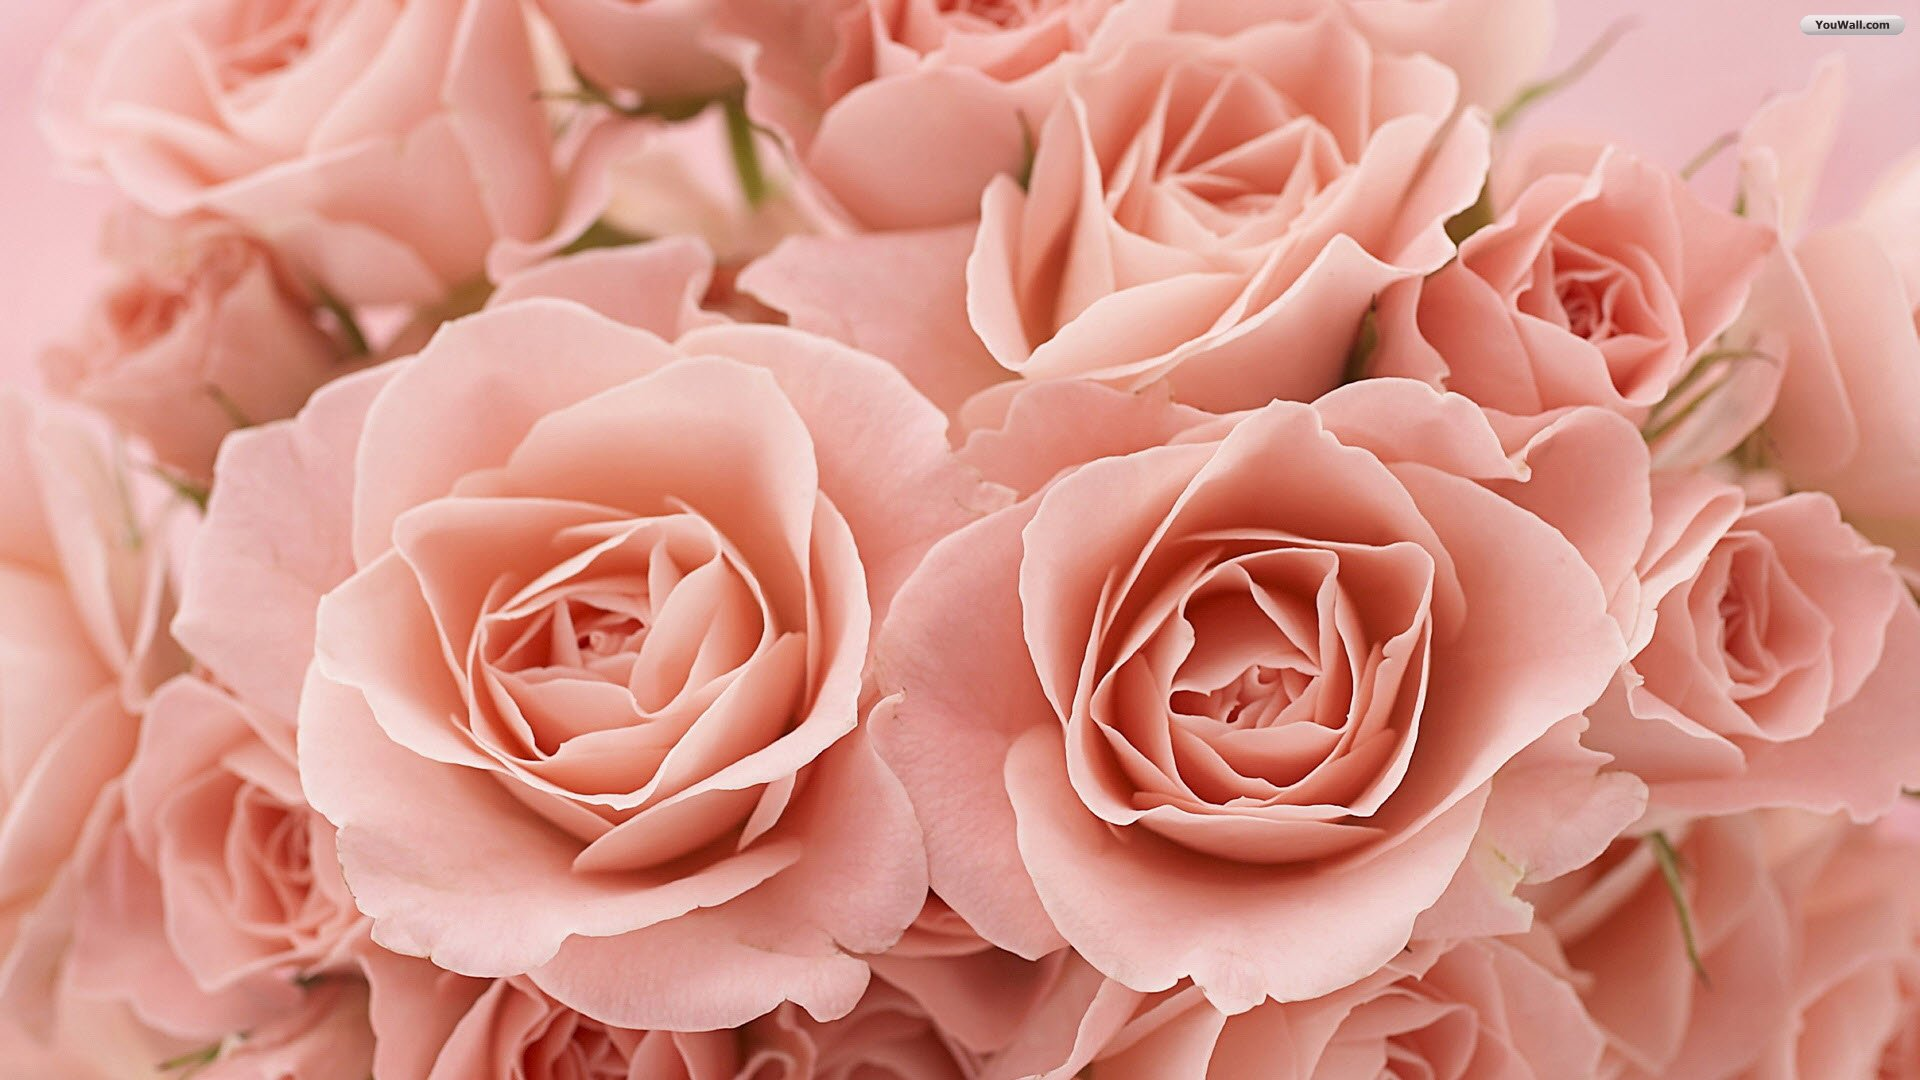 Pink Roses Tumblr Background Wallpaper 3